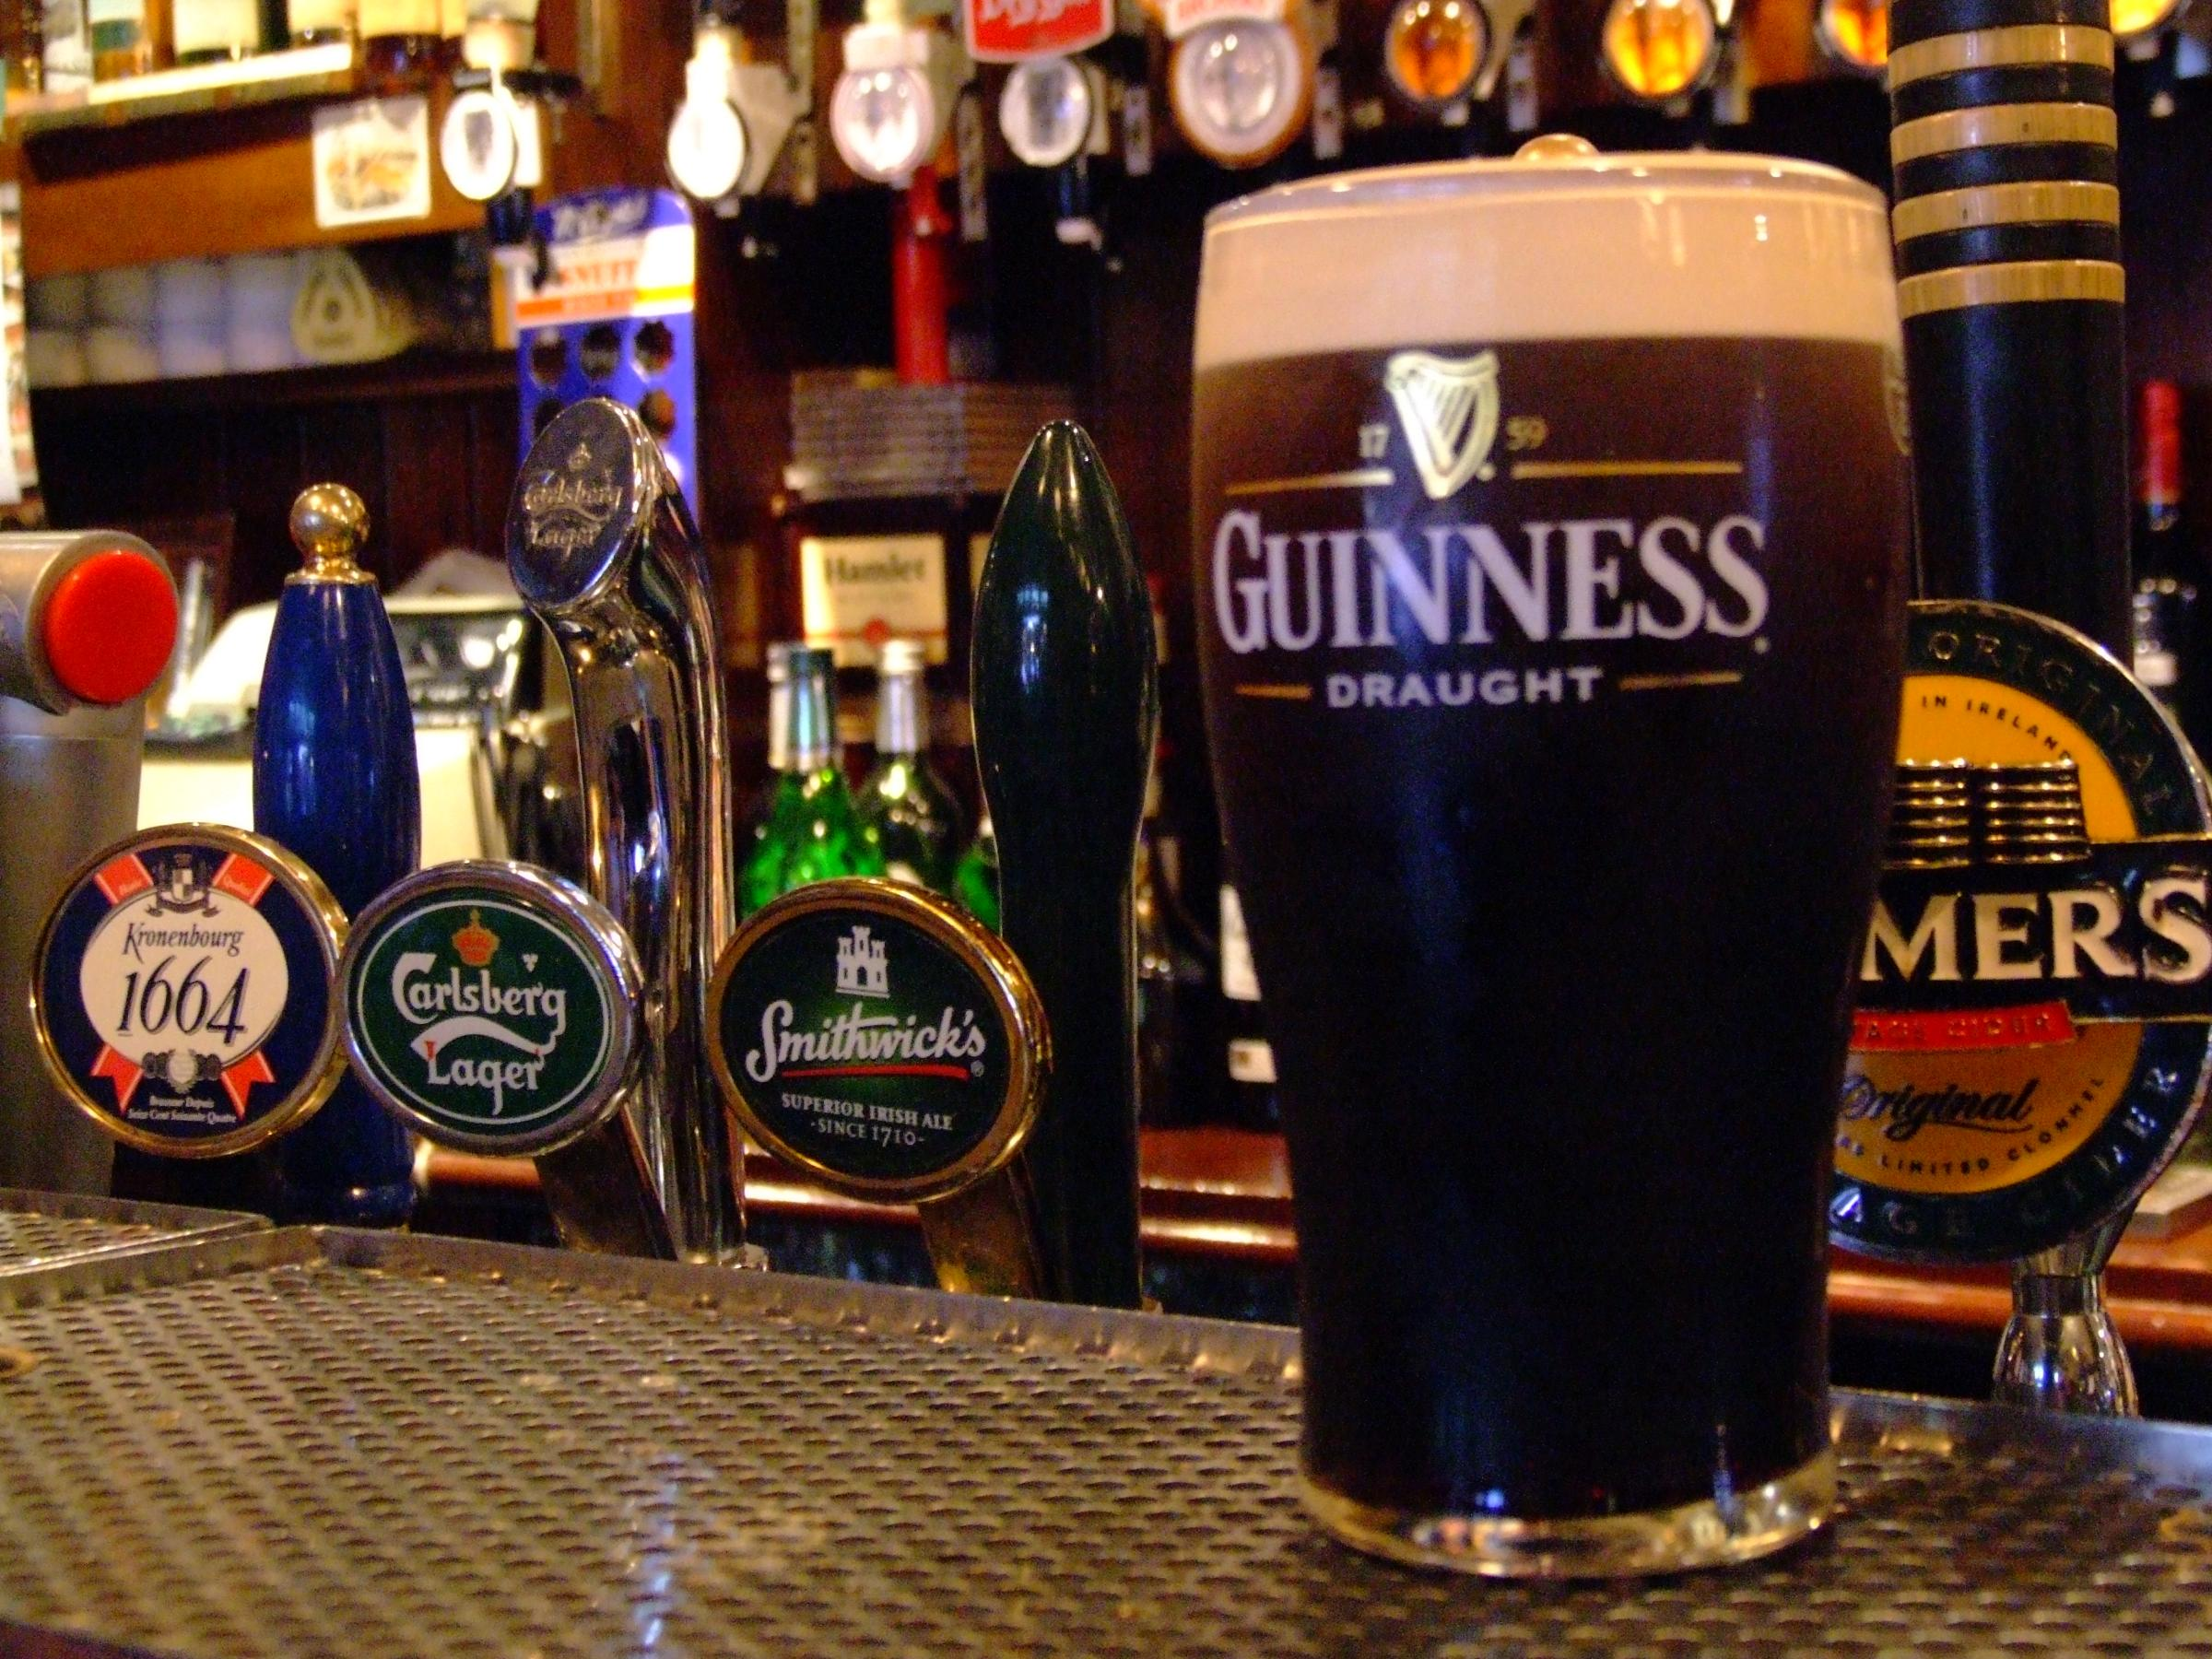 Beer Drinkers Destination, Dublin, Ireland, Guinness beer pint